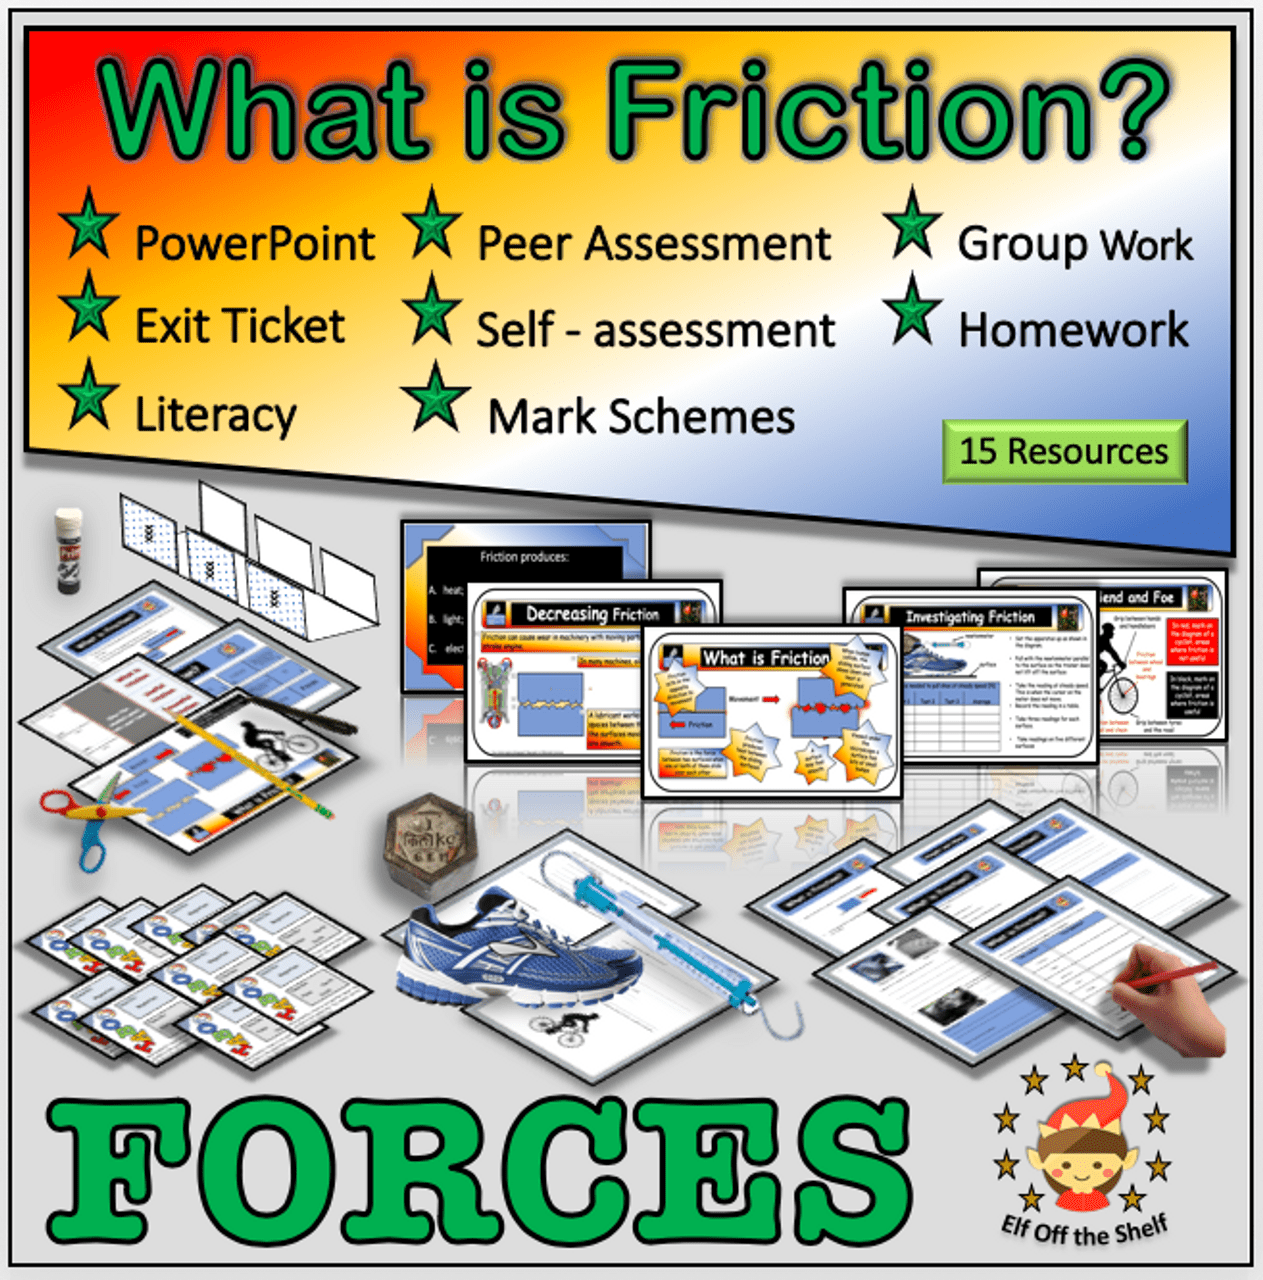 Forces - What is friction? - Middle School Science - Amped Up Learning [ 1280 x 1263 Pixel ]